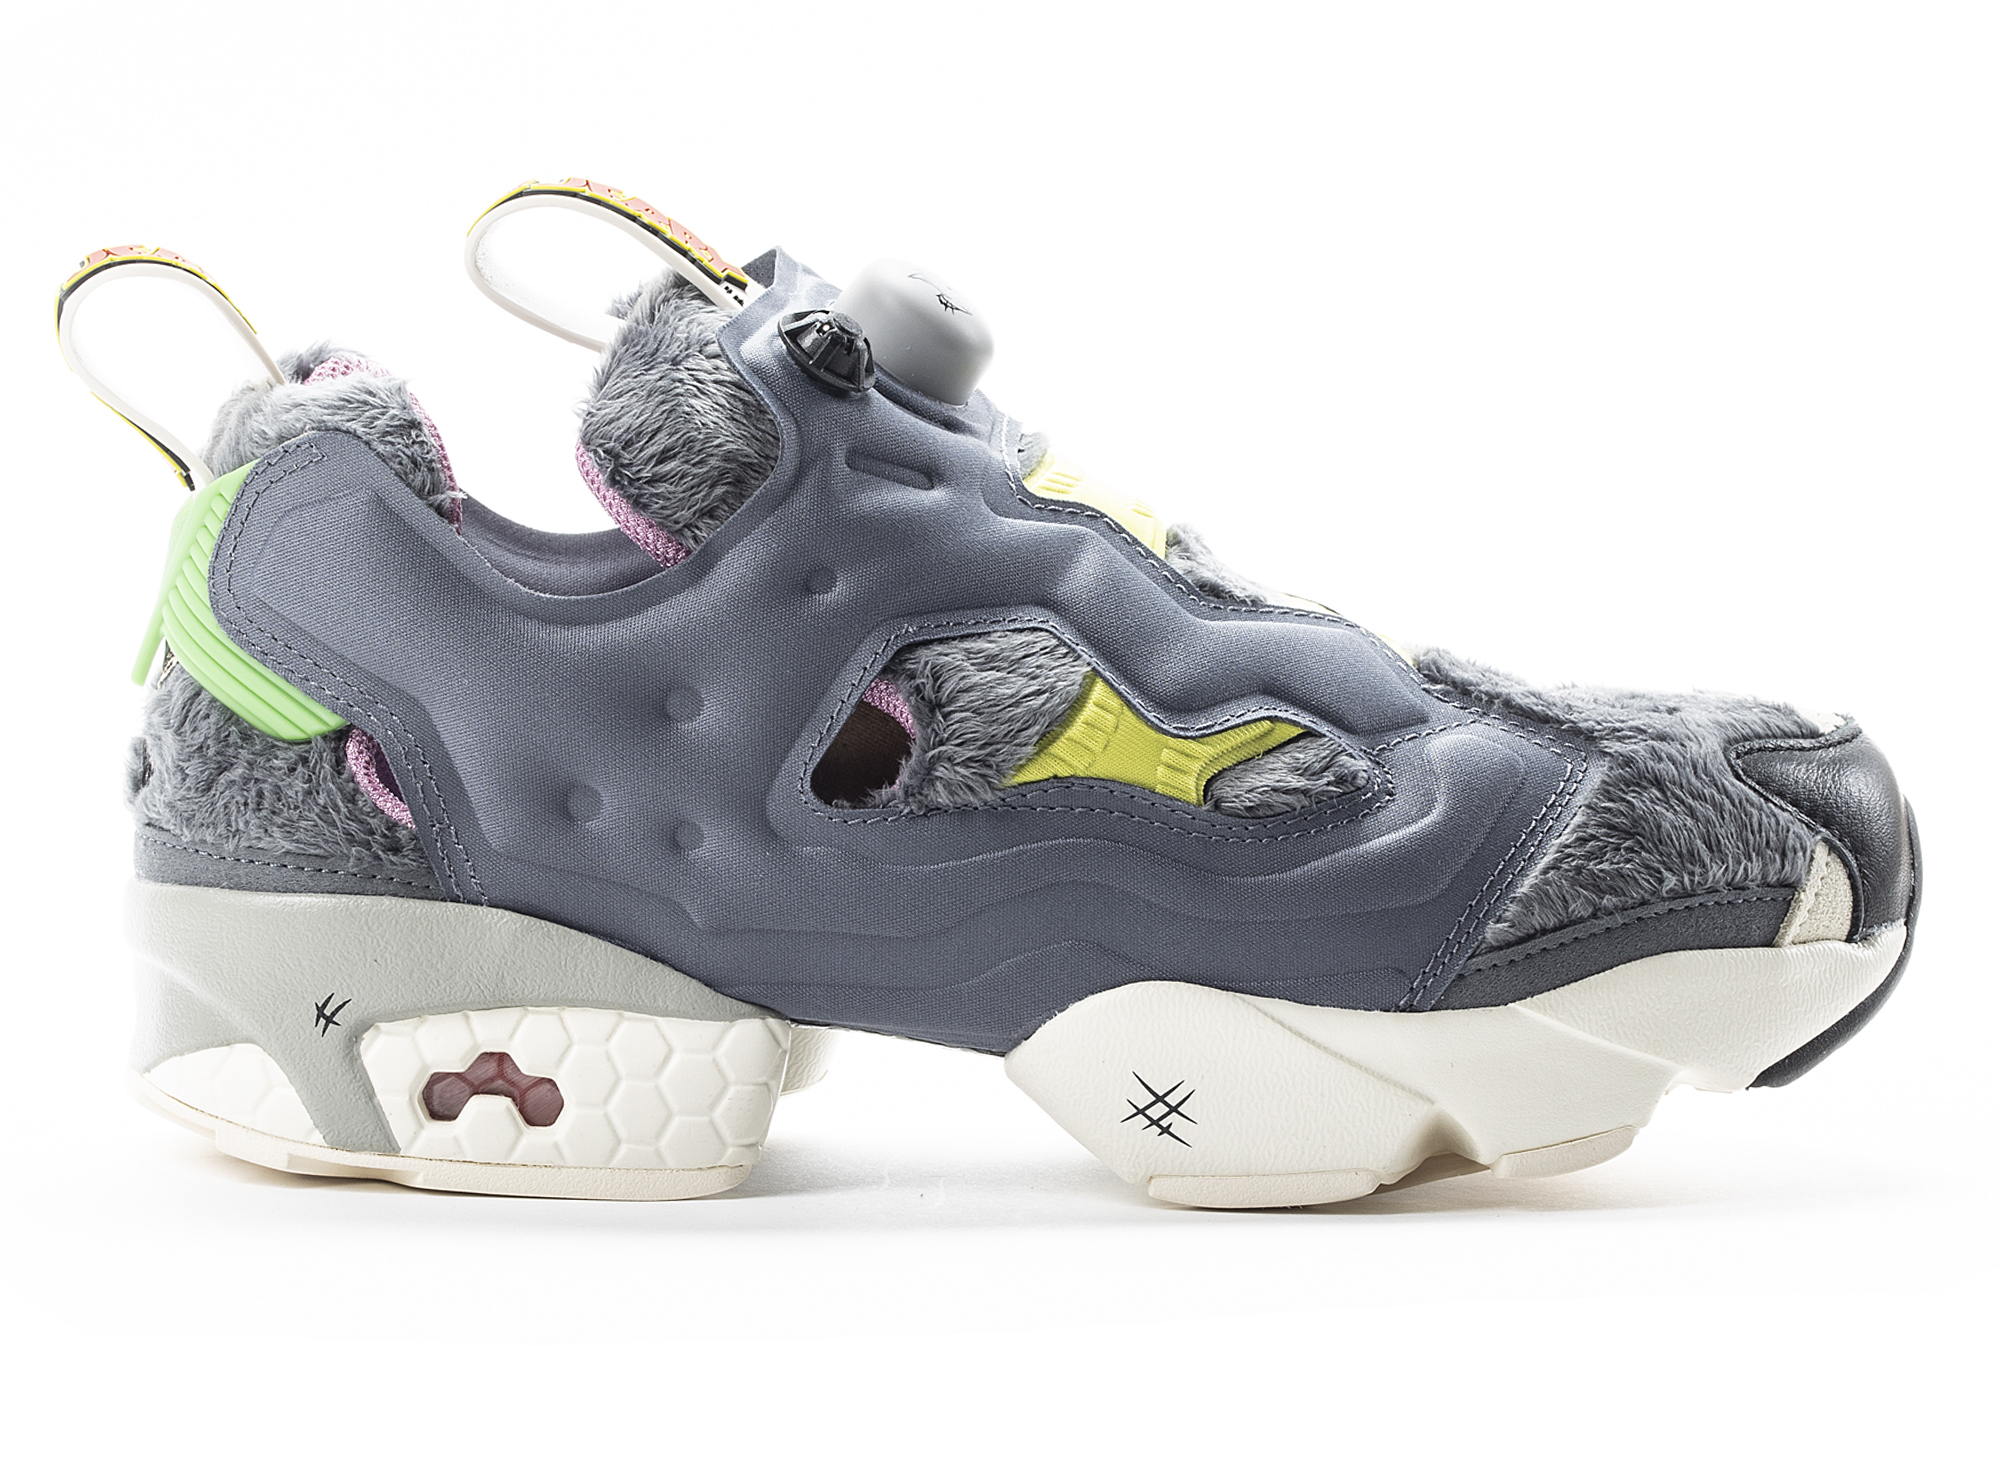 Reebok x Tom and Jerry Instapump Fury OG